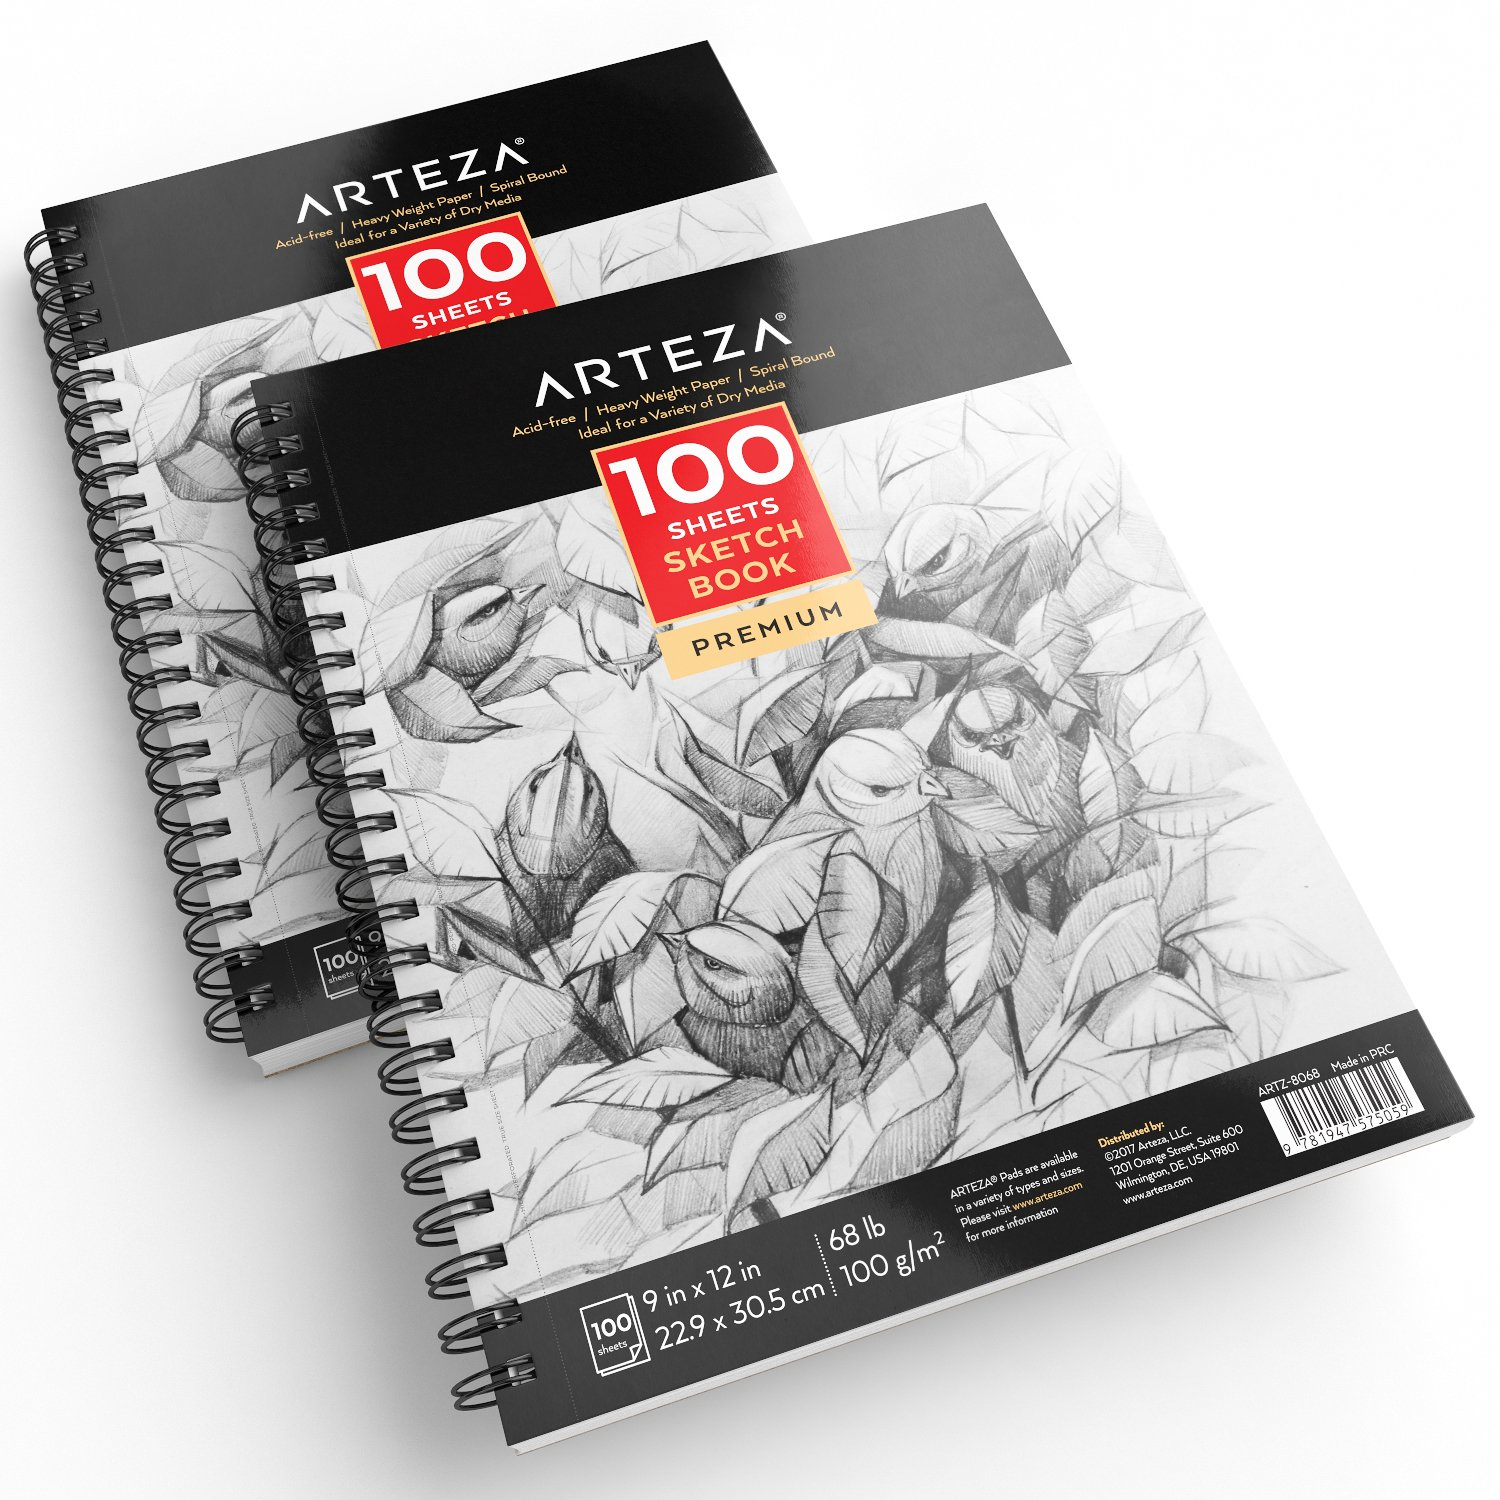 ARTEZA 9X12'' Sketch Book, Pack of 2, 200 Sheets (68 lb/100gsm), Spiral Bound Artist Sketch Pad, 100 Sheets Each, Durable Acid Free Drawing Paper, Ideal for Kids & Adults, Bright White